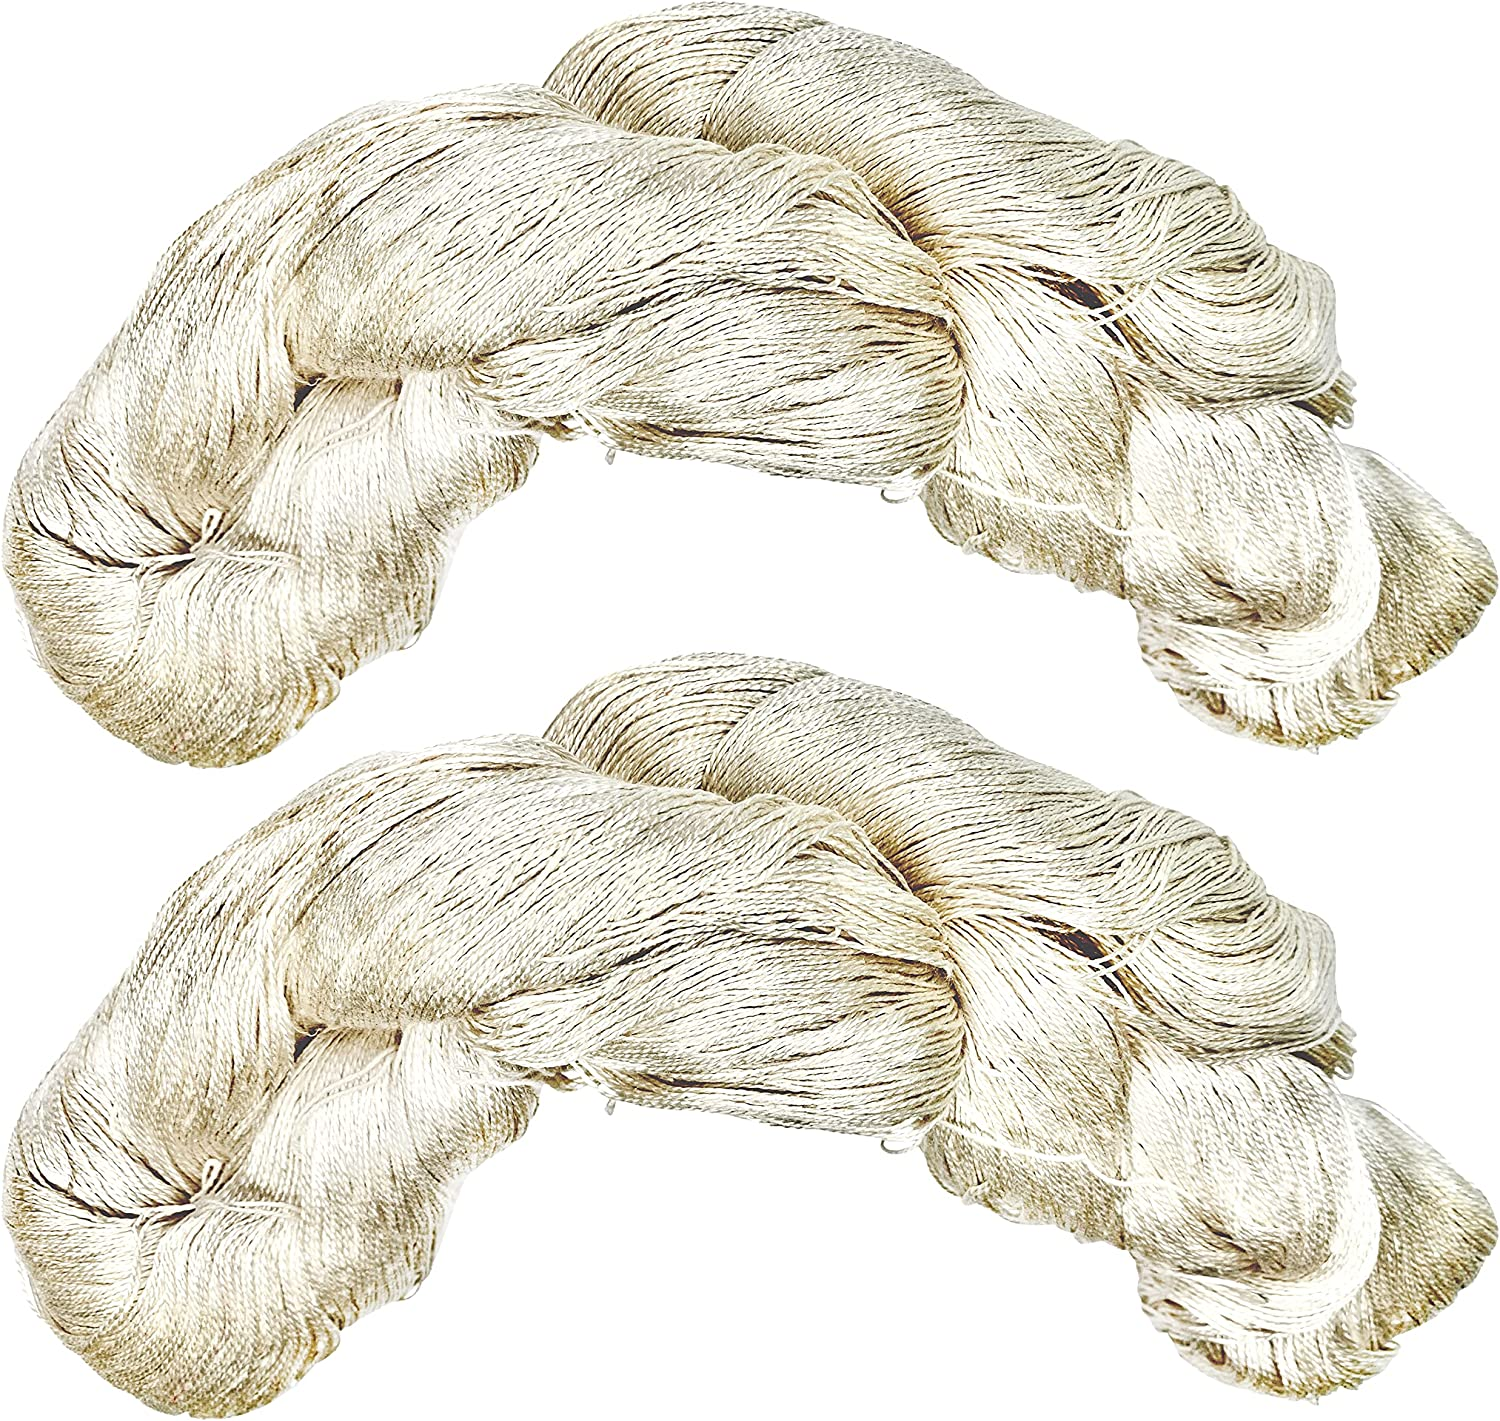 Revolution Fibers Mulberry Silk Lace Yarn, 100% Pure Off-White (Undyed) Lace Weight Skein Silk 20/2, Can Be Dyed, 100 Grams - 1000 Yards per Hank, Weaving, Crafting, Crochet, Knitting (1-Pack)